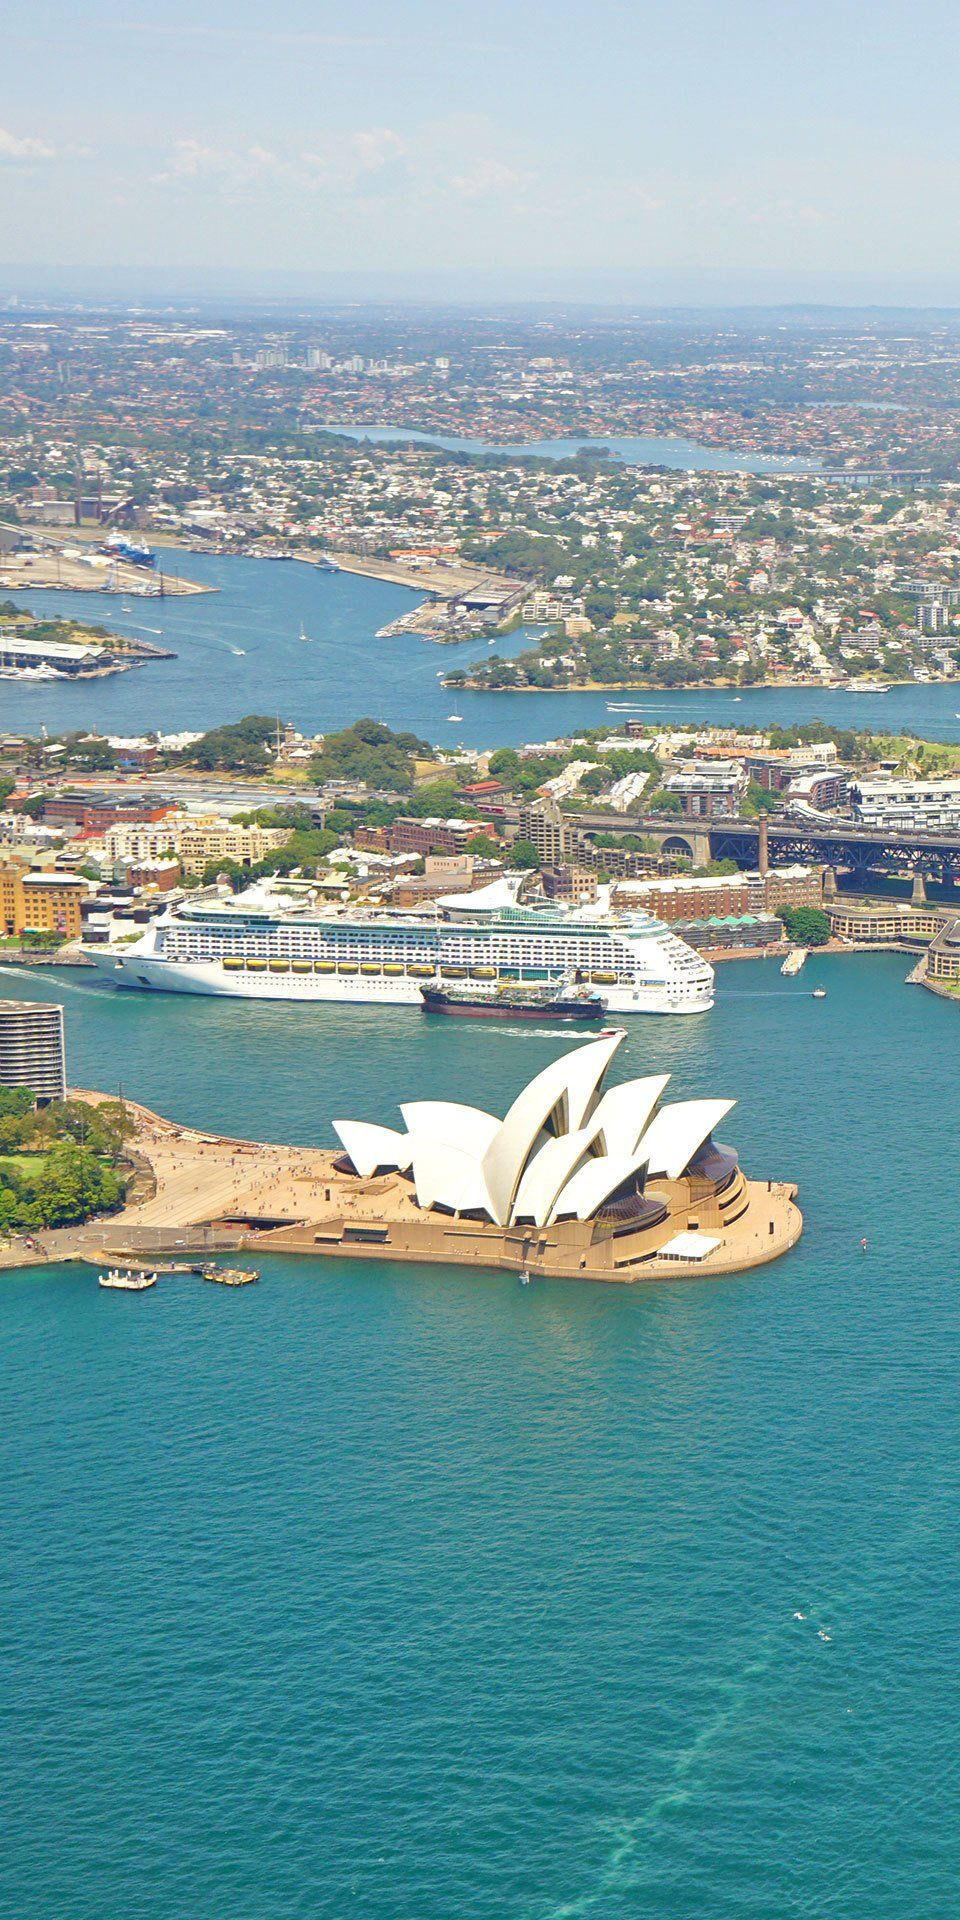 Sydney, Australia | If you're up for an out of this world